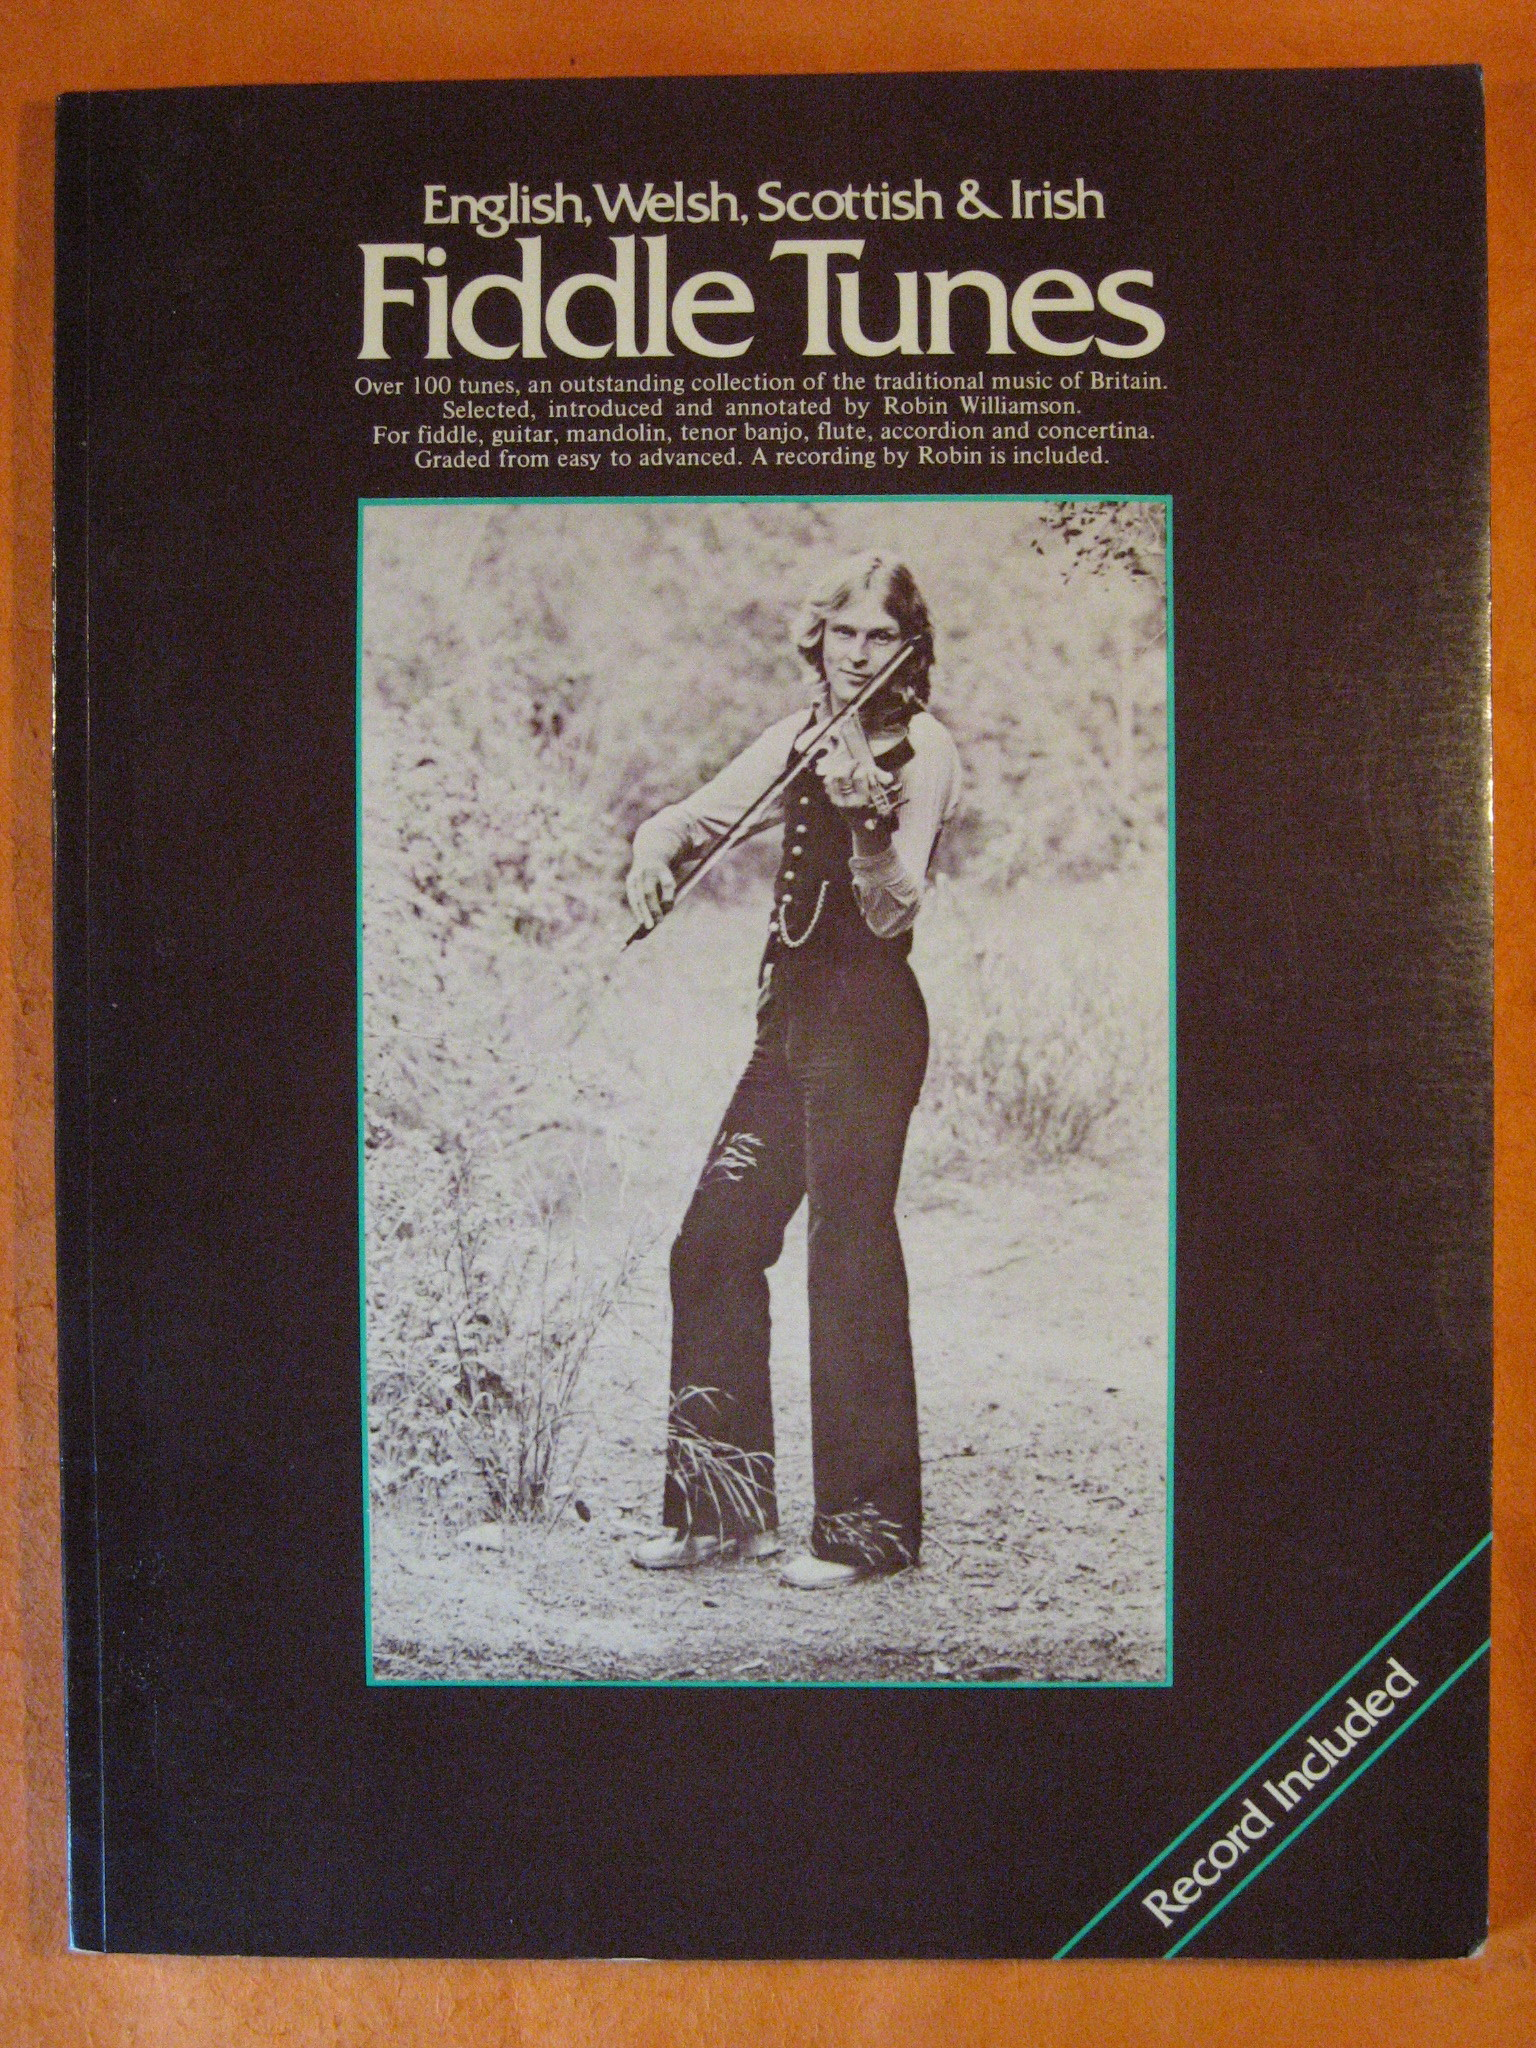 English, Welsh, Scottish & Irish Fiddle Tunes, Williamson, Robin